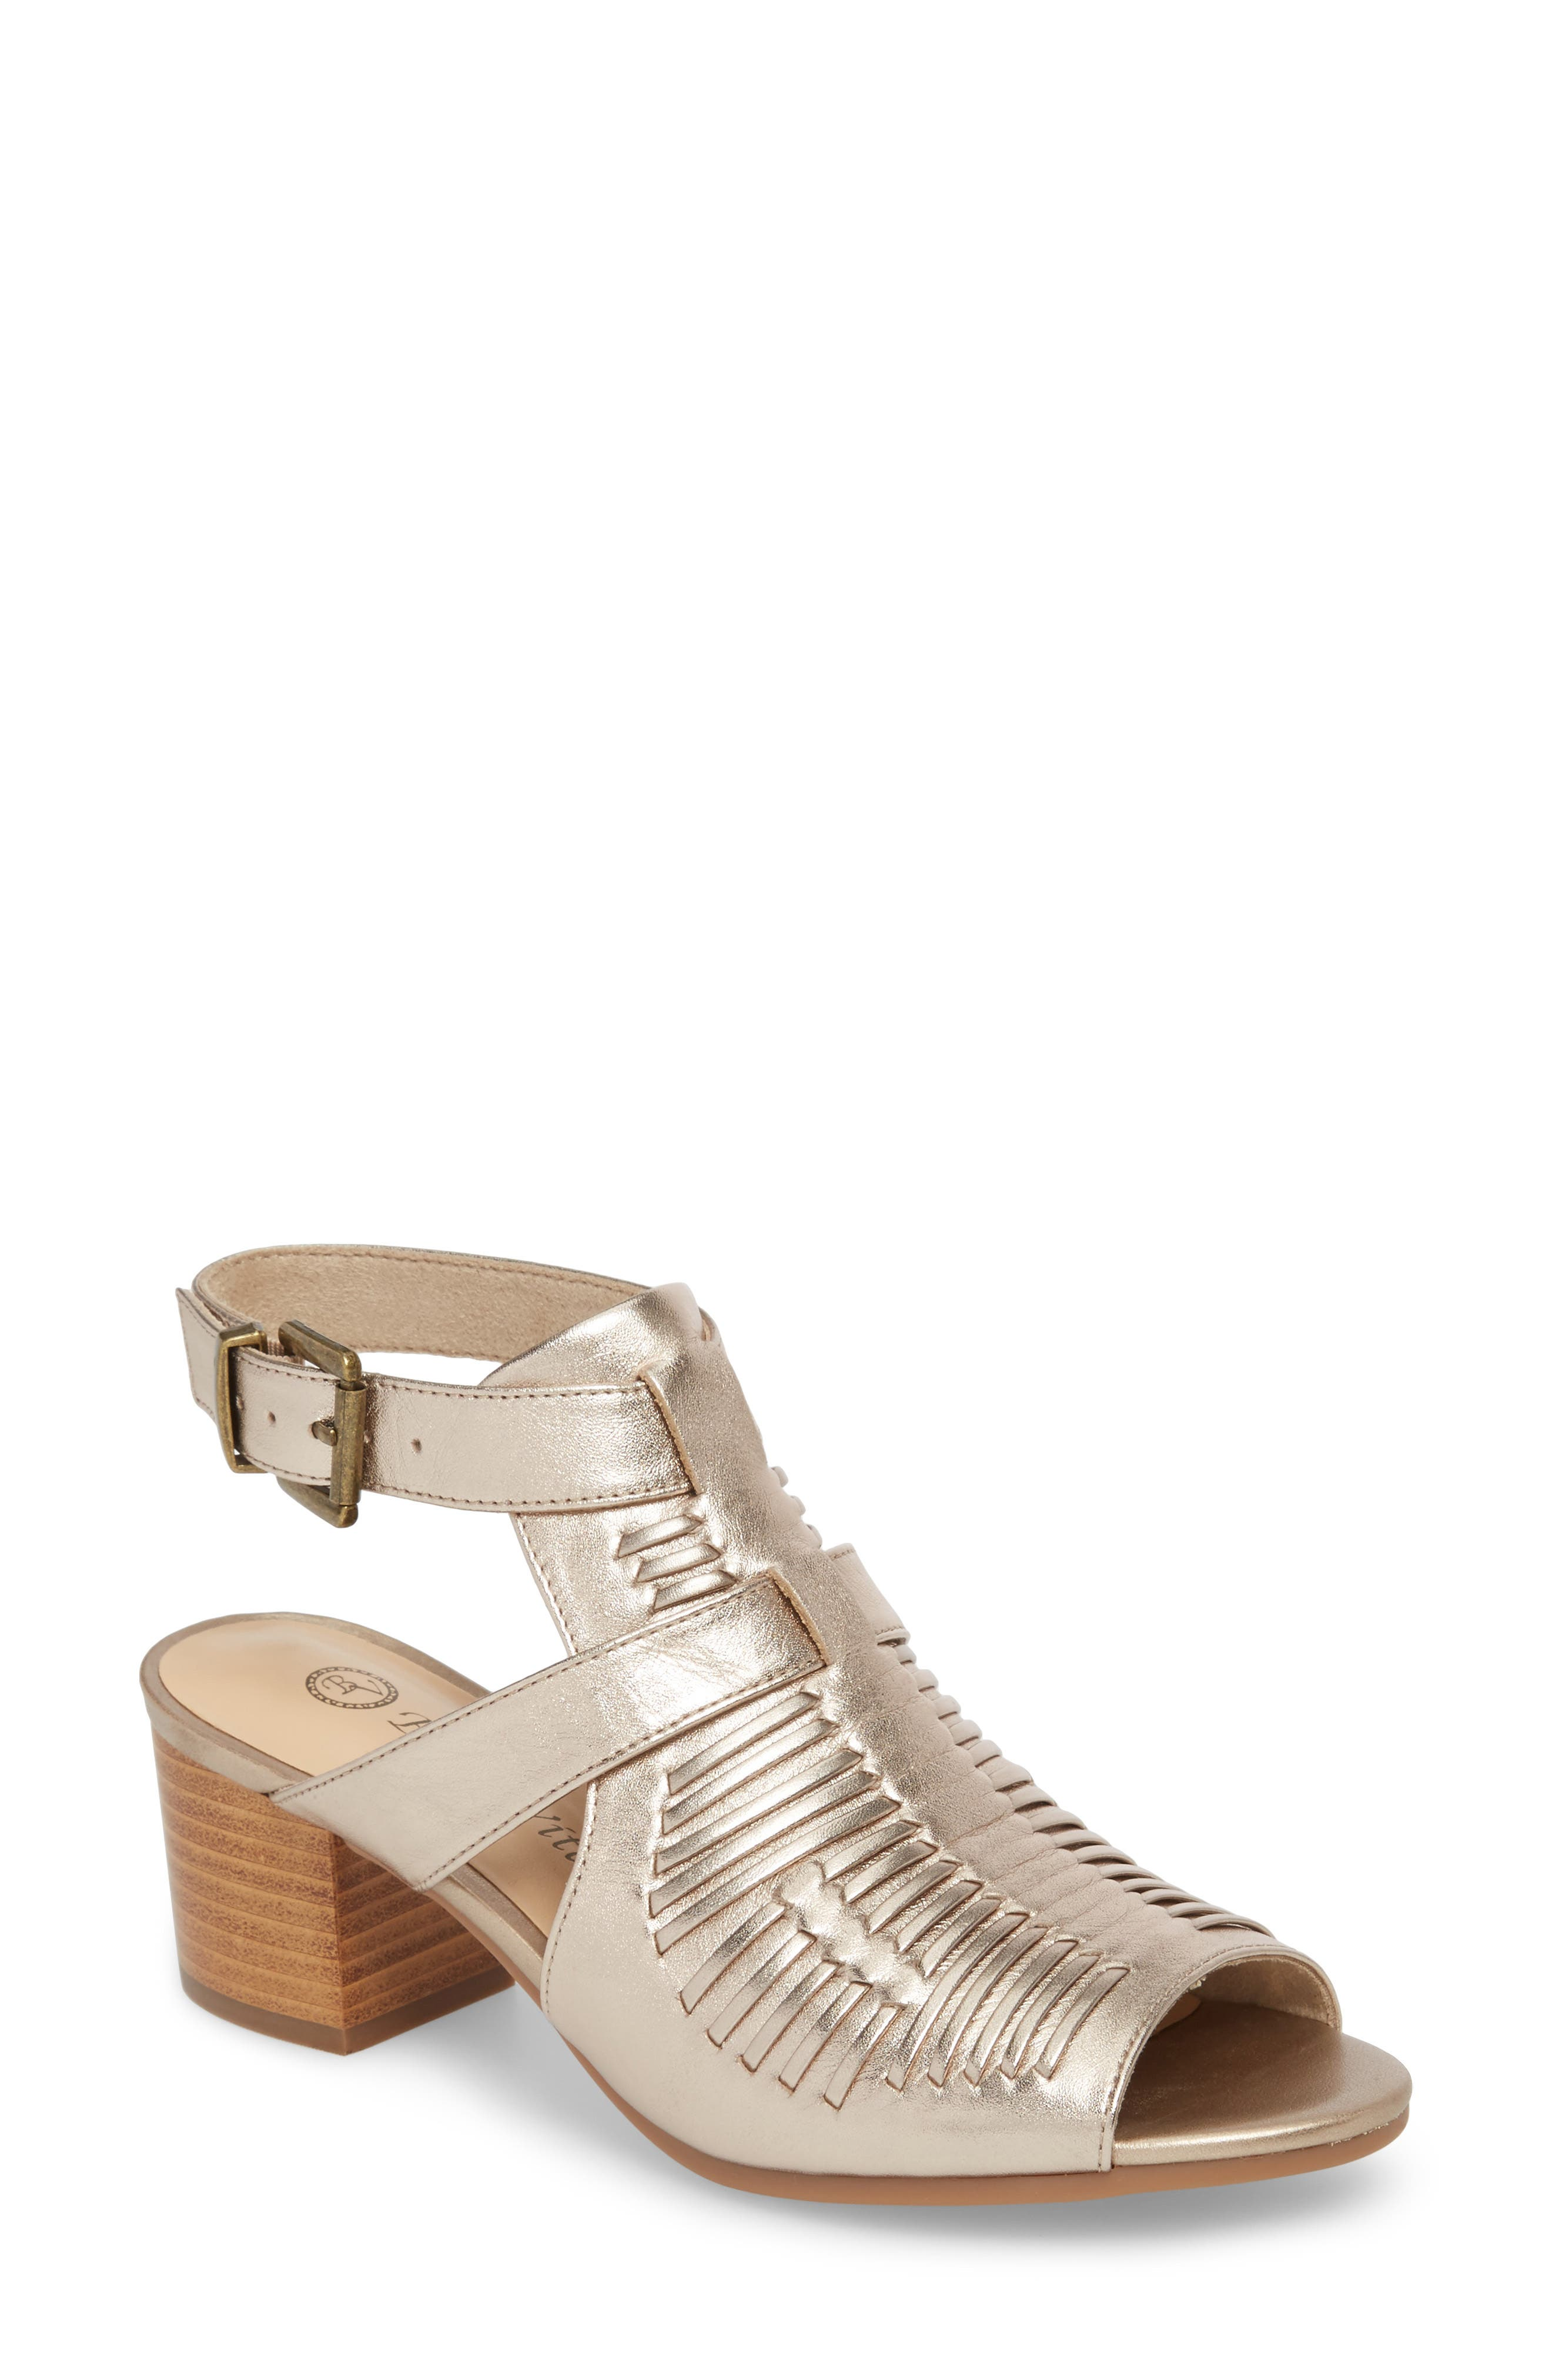 Finley Ankle Strap Sandal,                             Main thumbnail 1, color,                             Champagne Fabric